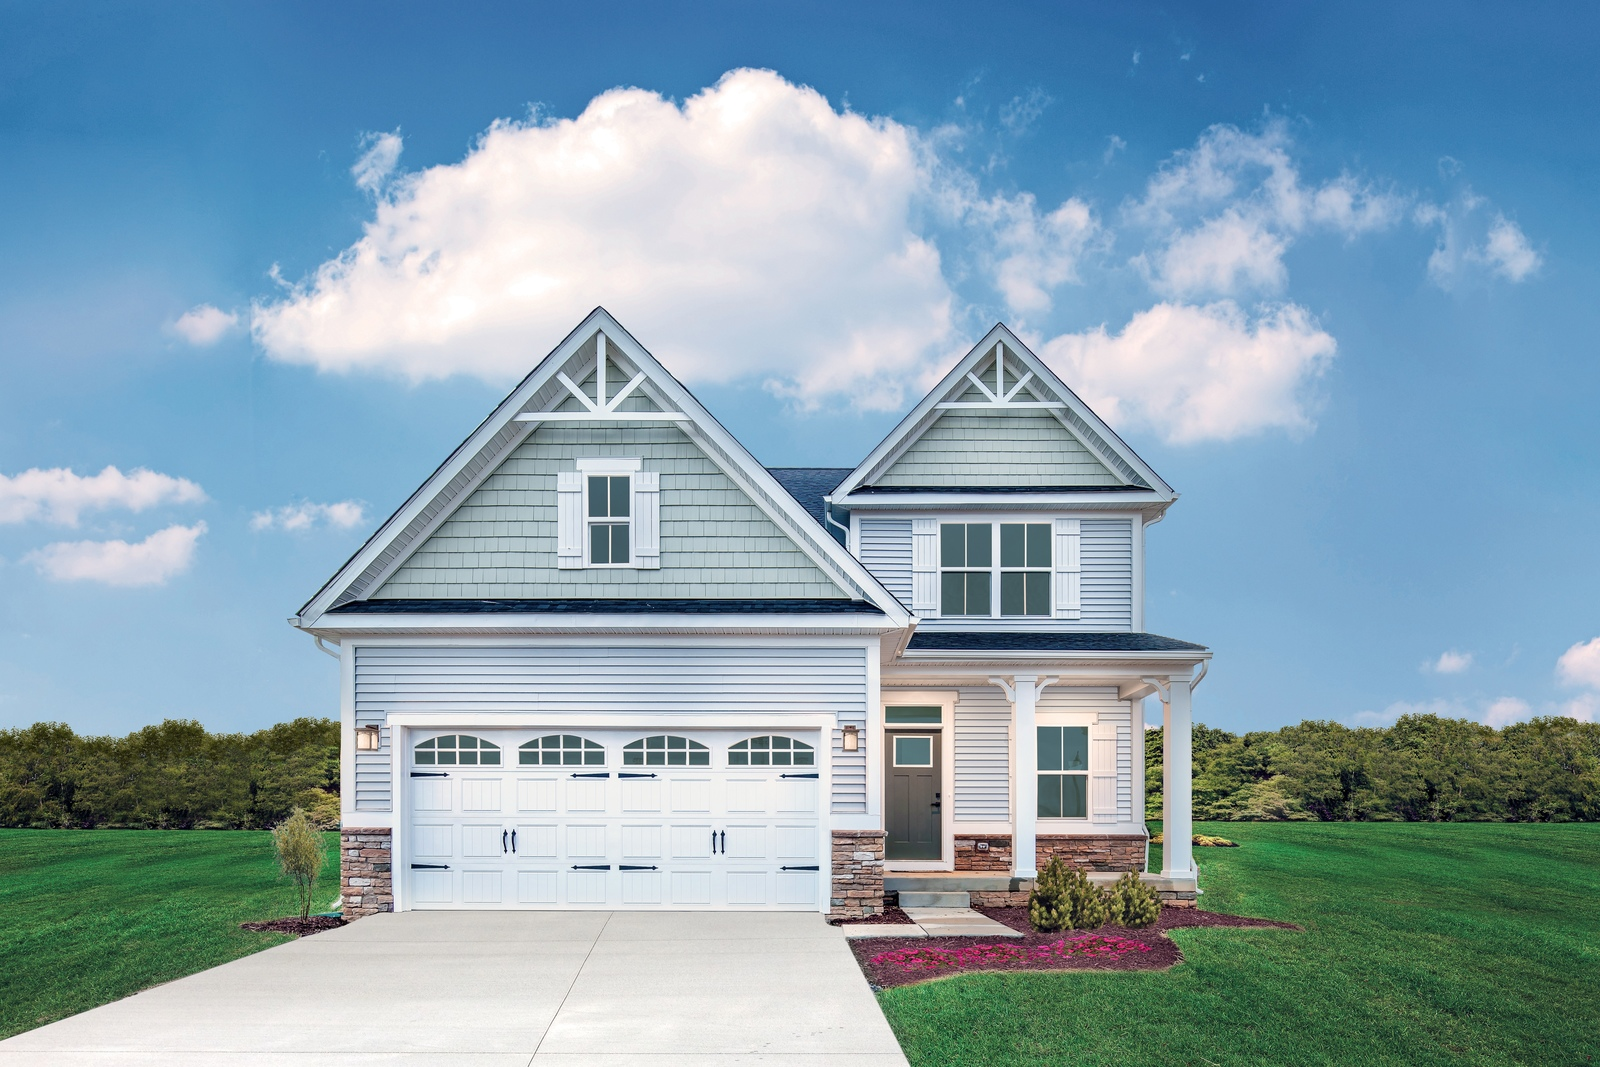 New Homes for sale at Stonehurst Plantation in Easley, SC within the